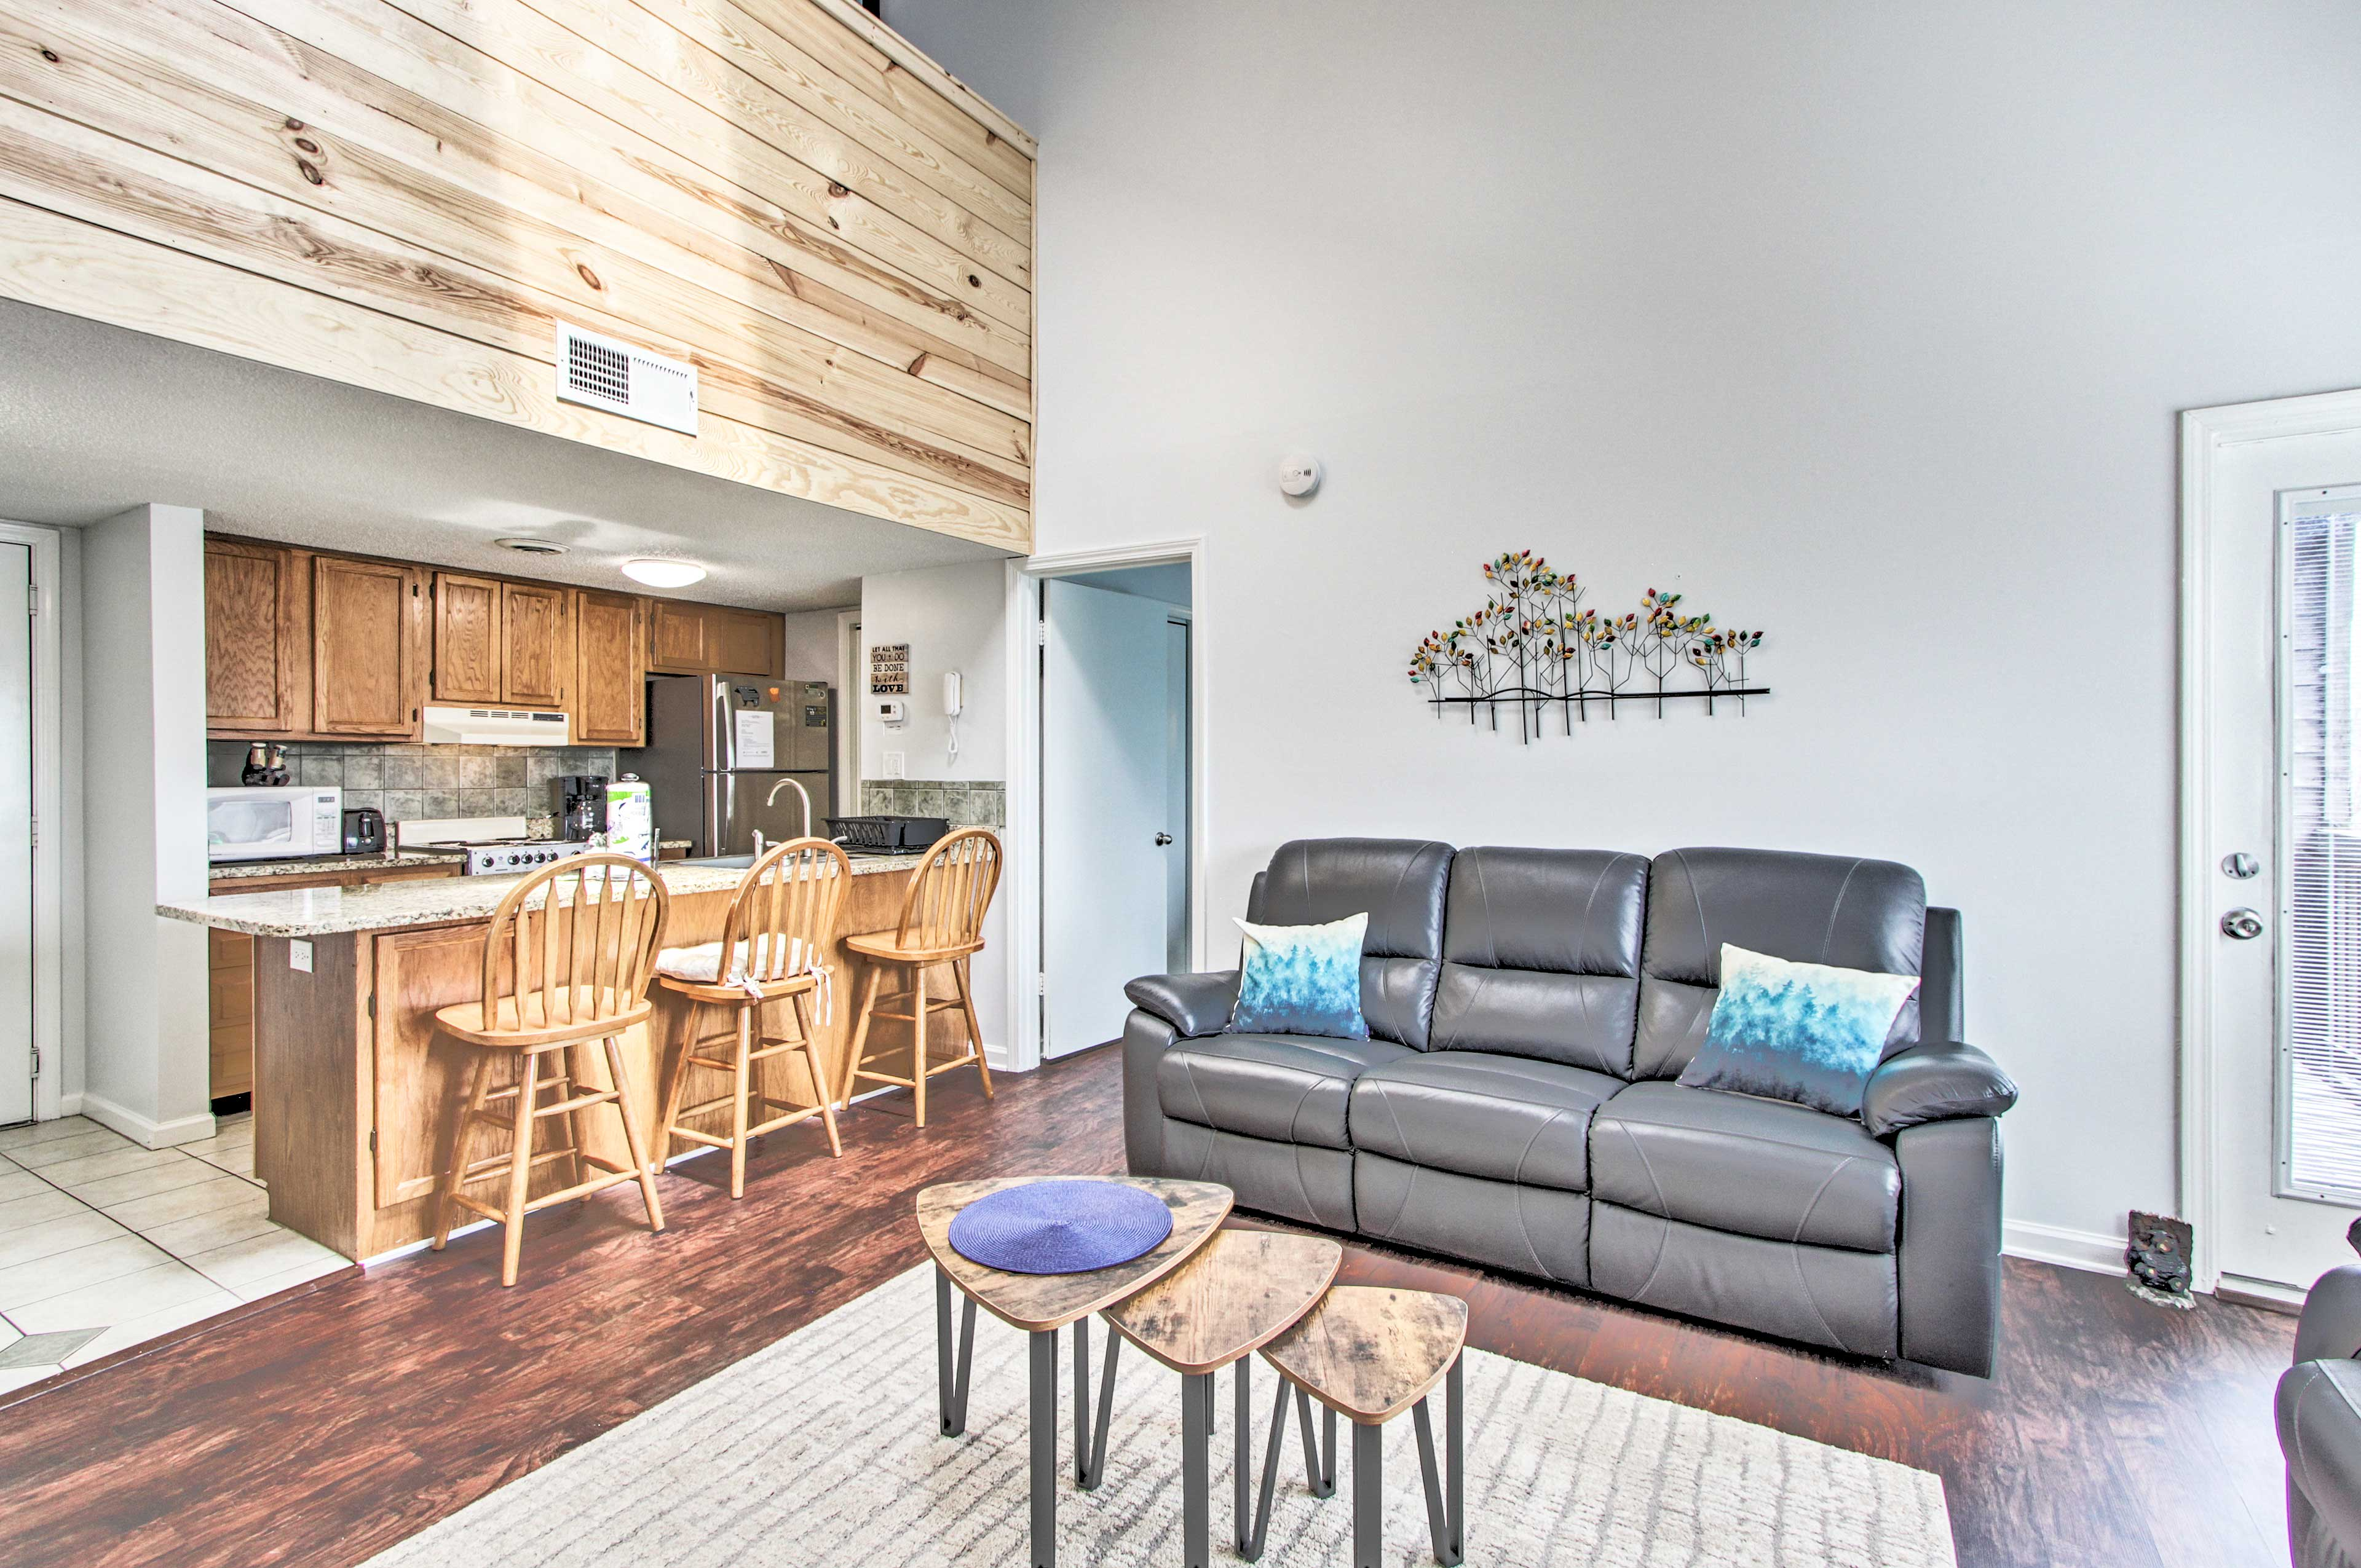 There's room for everyone in this charming Gatlinburg condo.